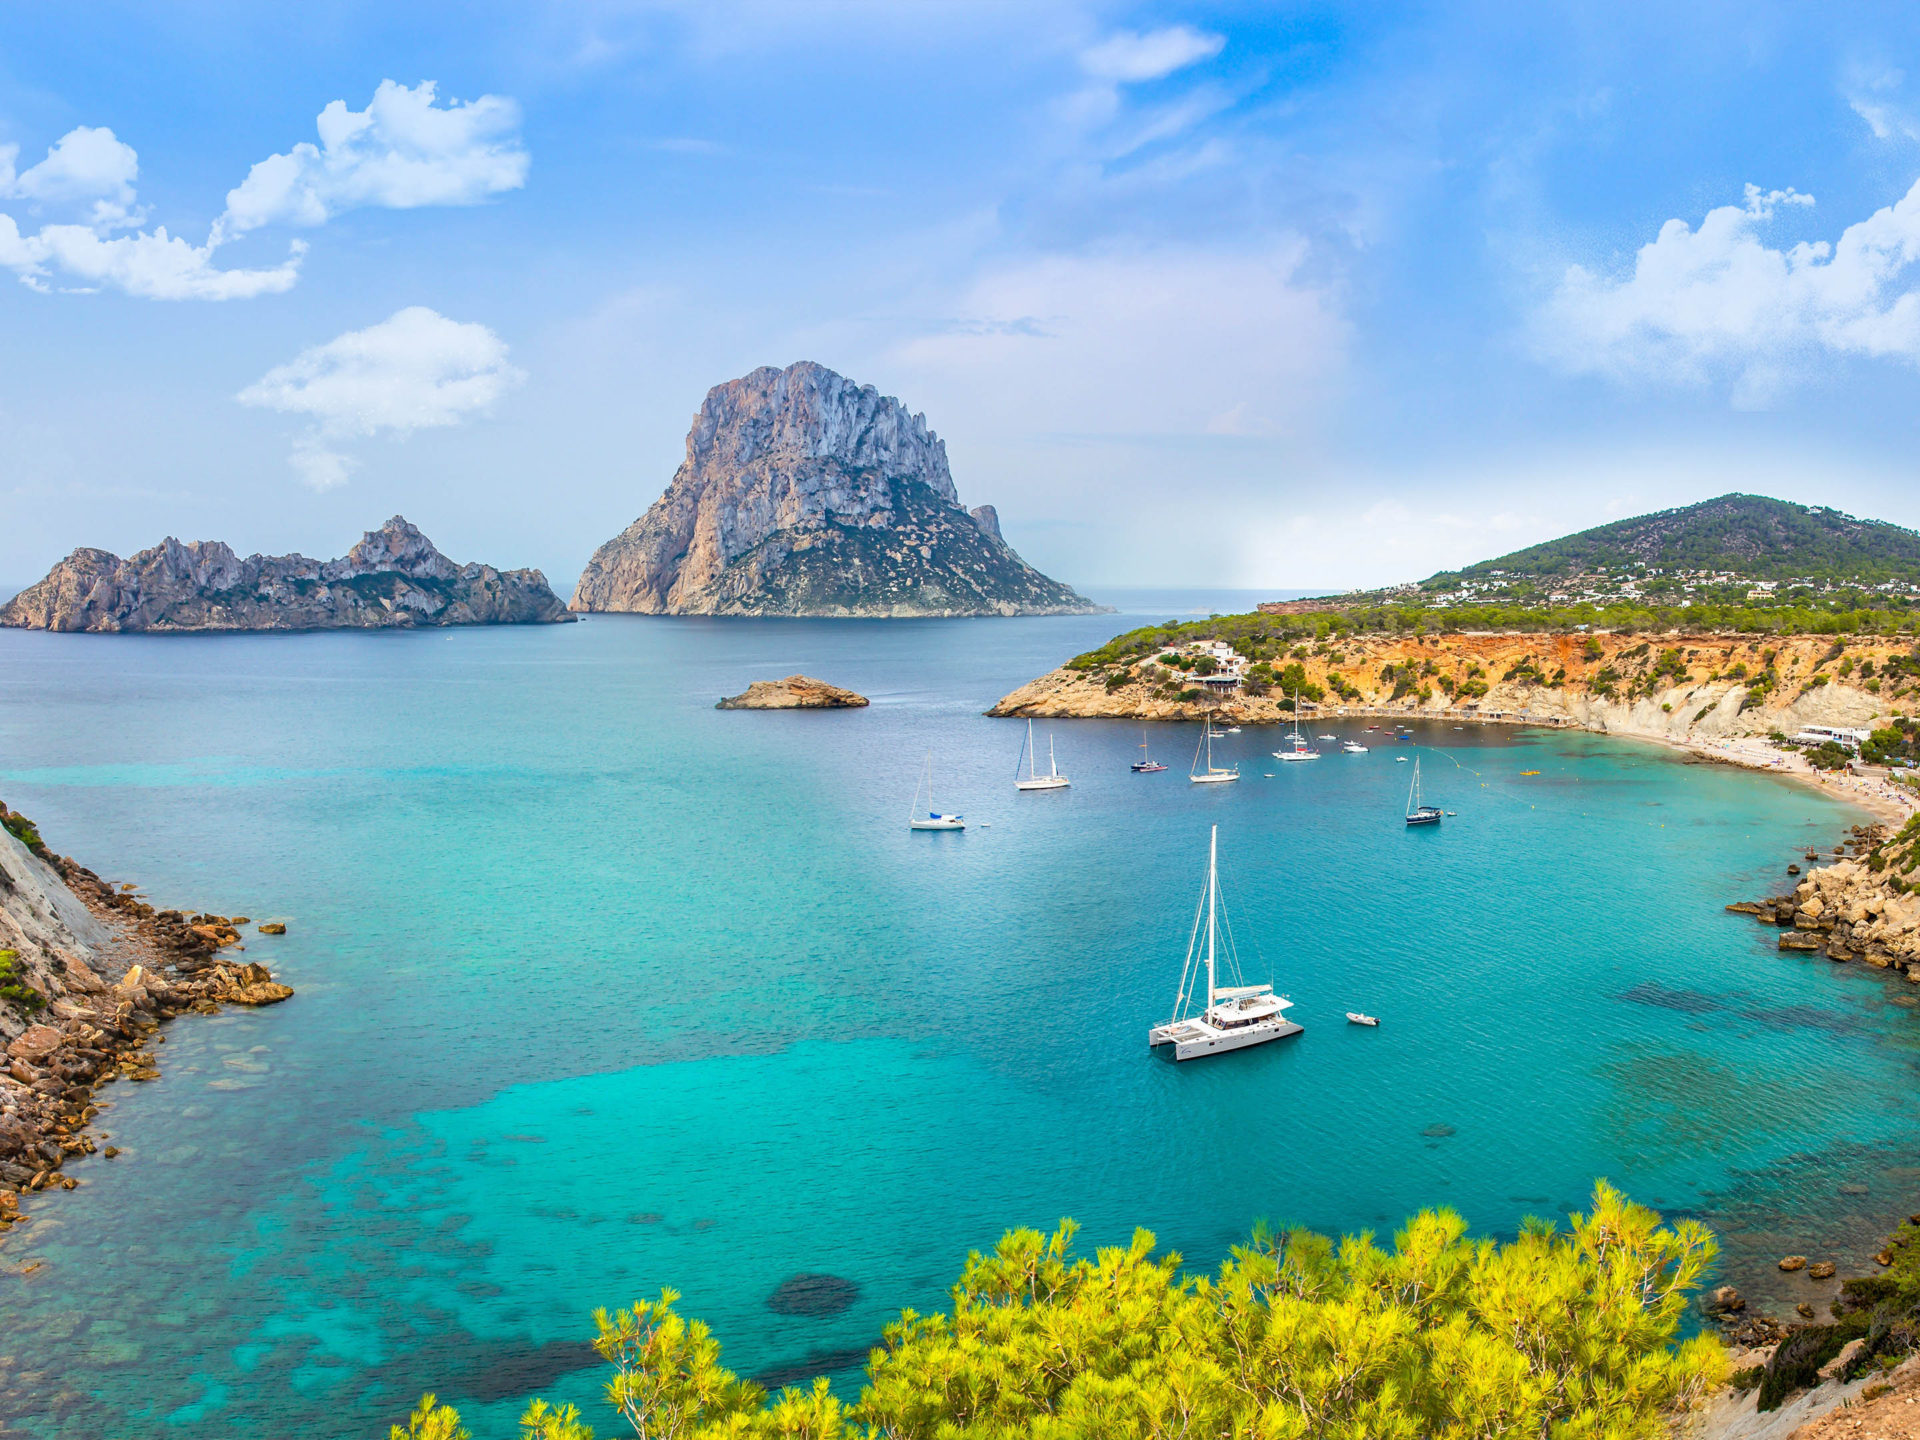 Iphone X Most Stunnign Wallpapers Spain Island Ibiza Balearic Islands Archipelago In The